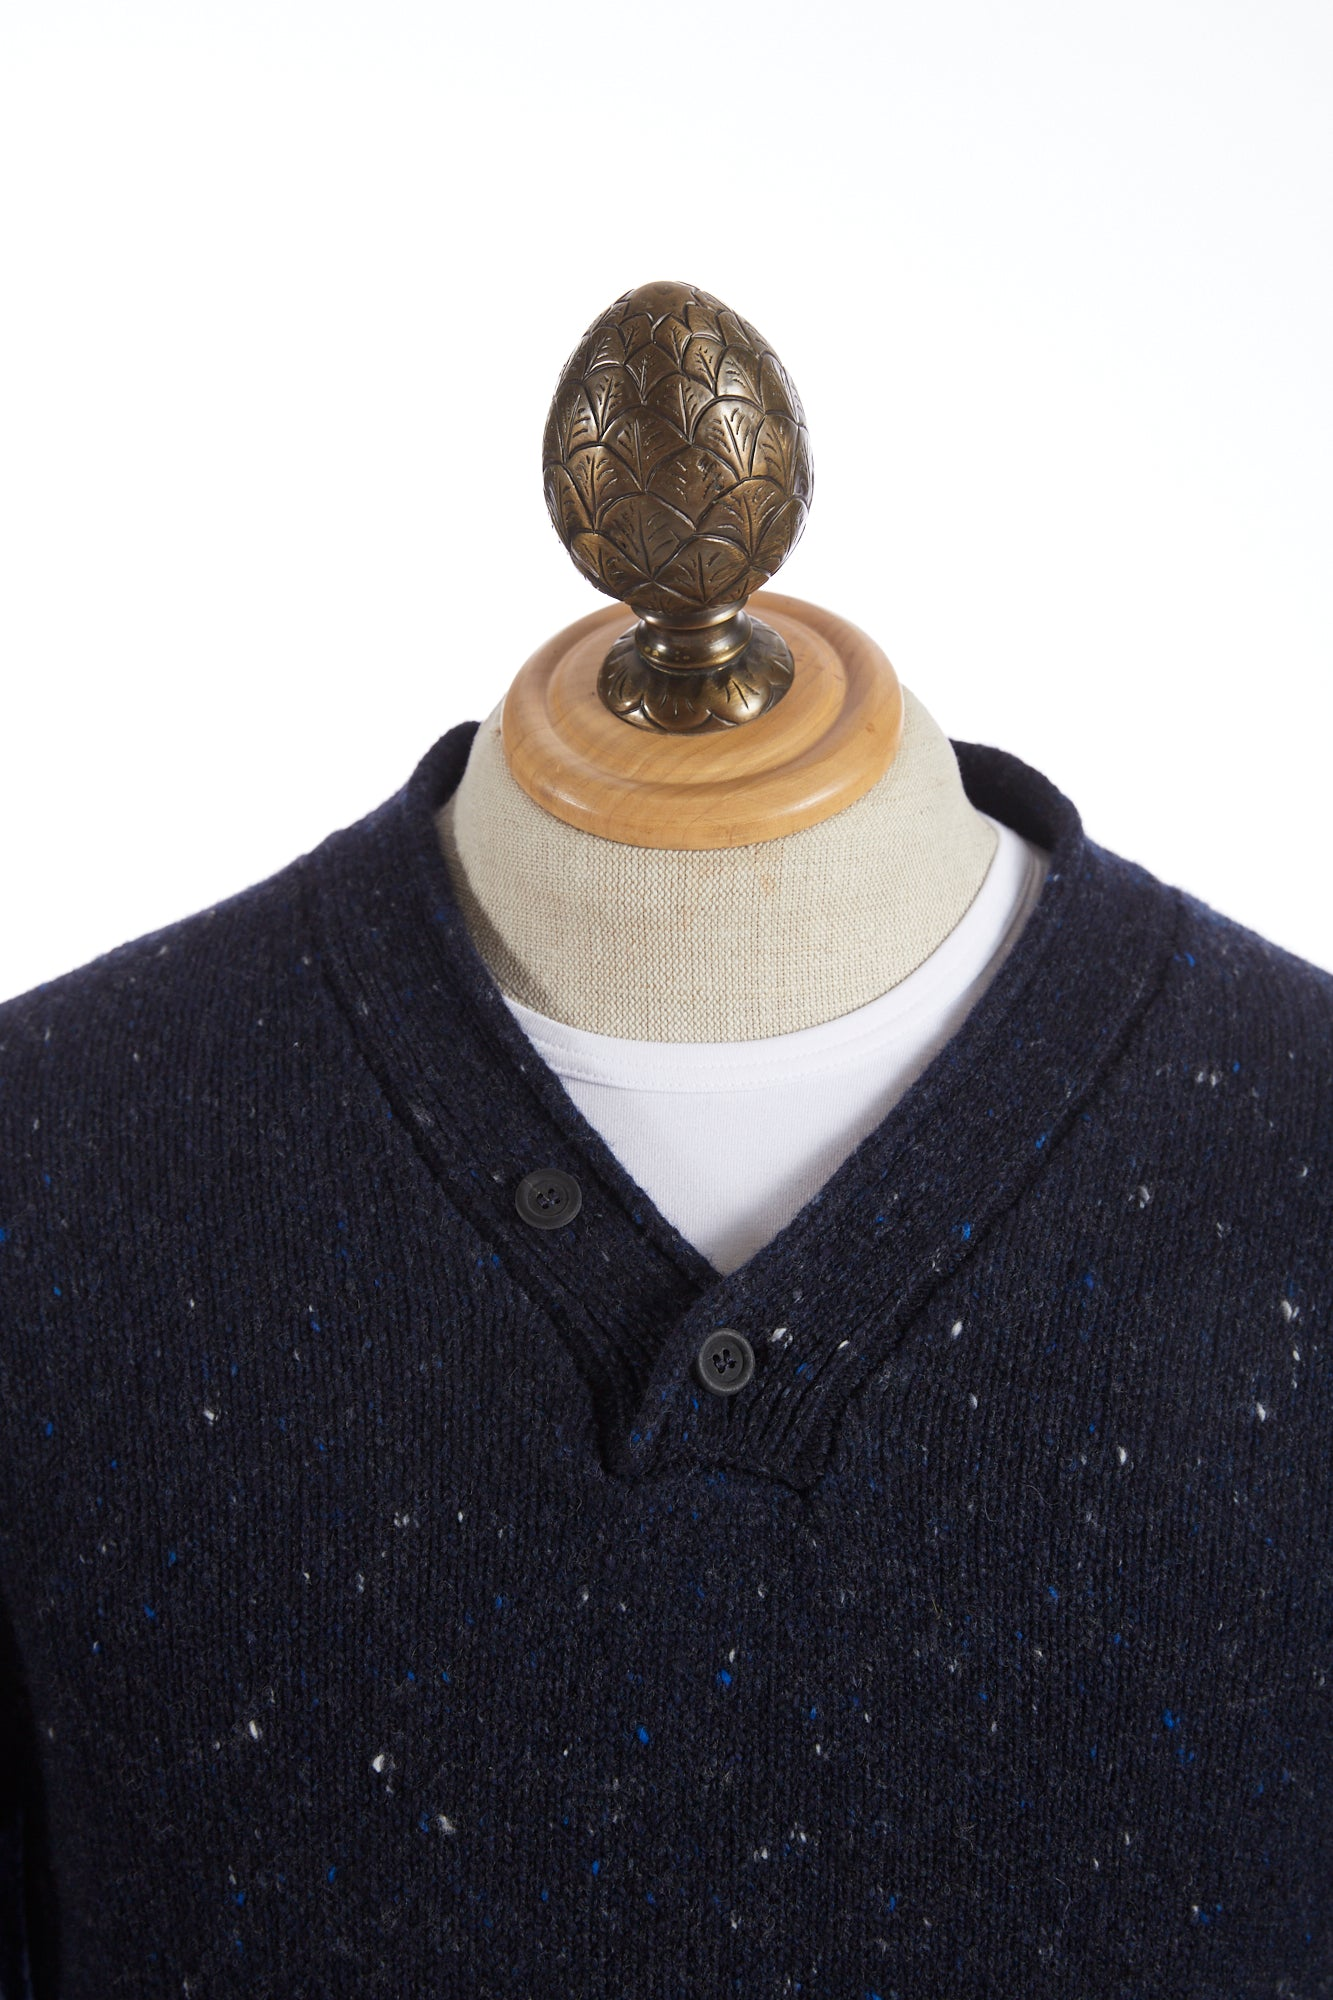 Inis Meáin Blue Donegal Plated Hurler Sweater - Sweaters - Inis Meáin - LALONDE's